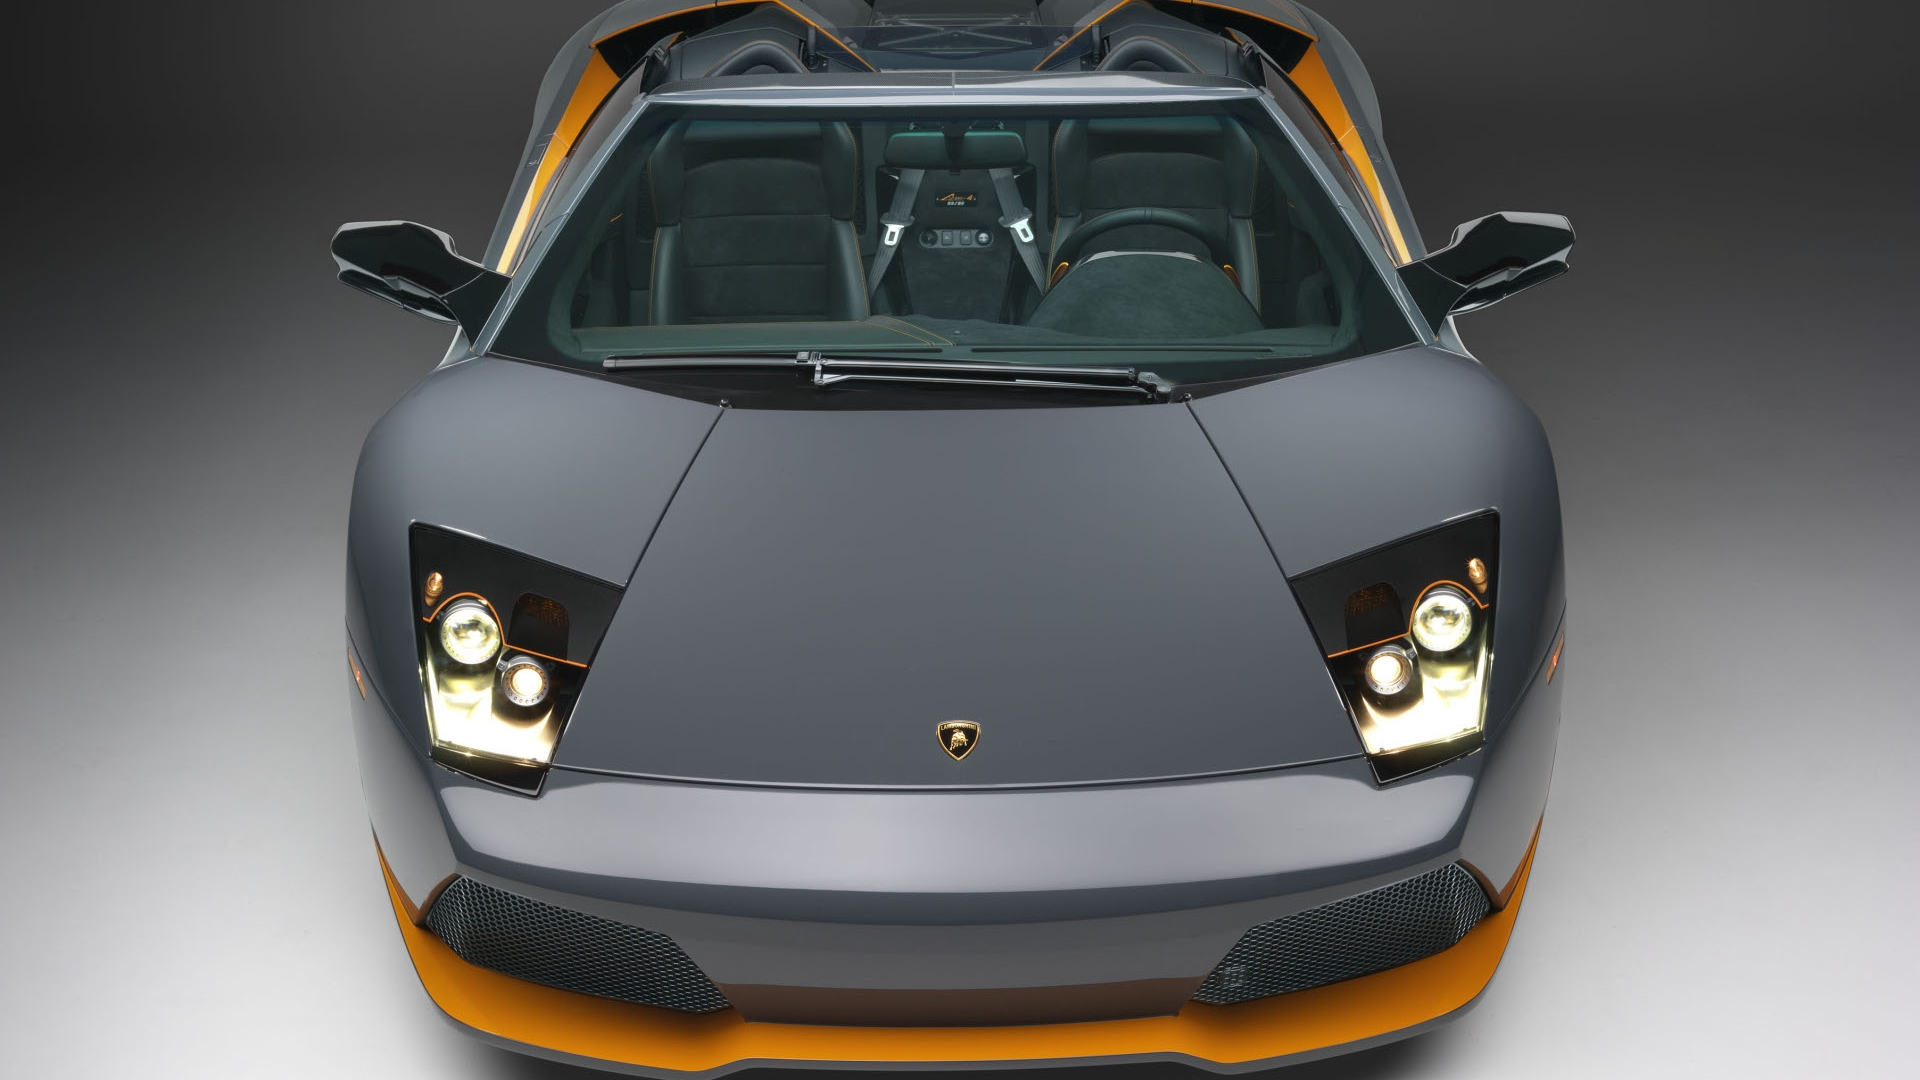 Lamborghini Roadster Wallpaper